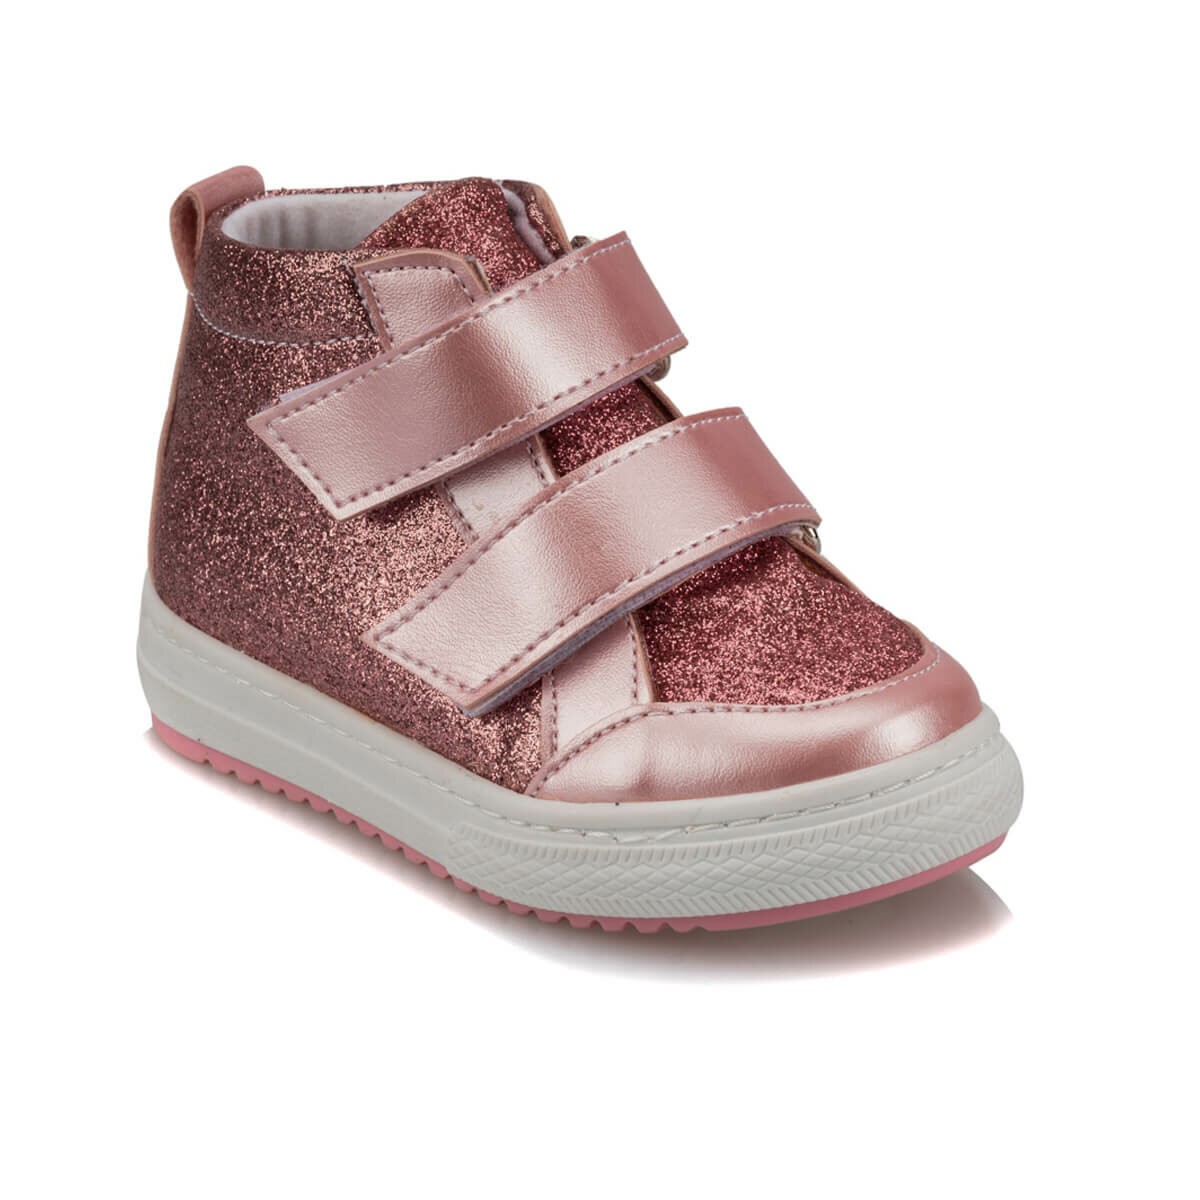 FLO 92.512018.B Pink Female Child Boots Polaris